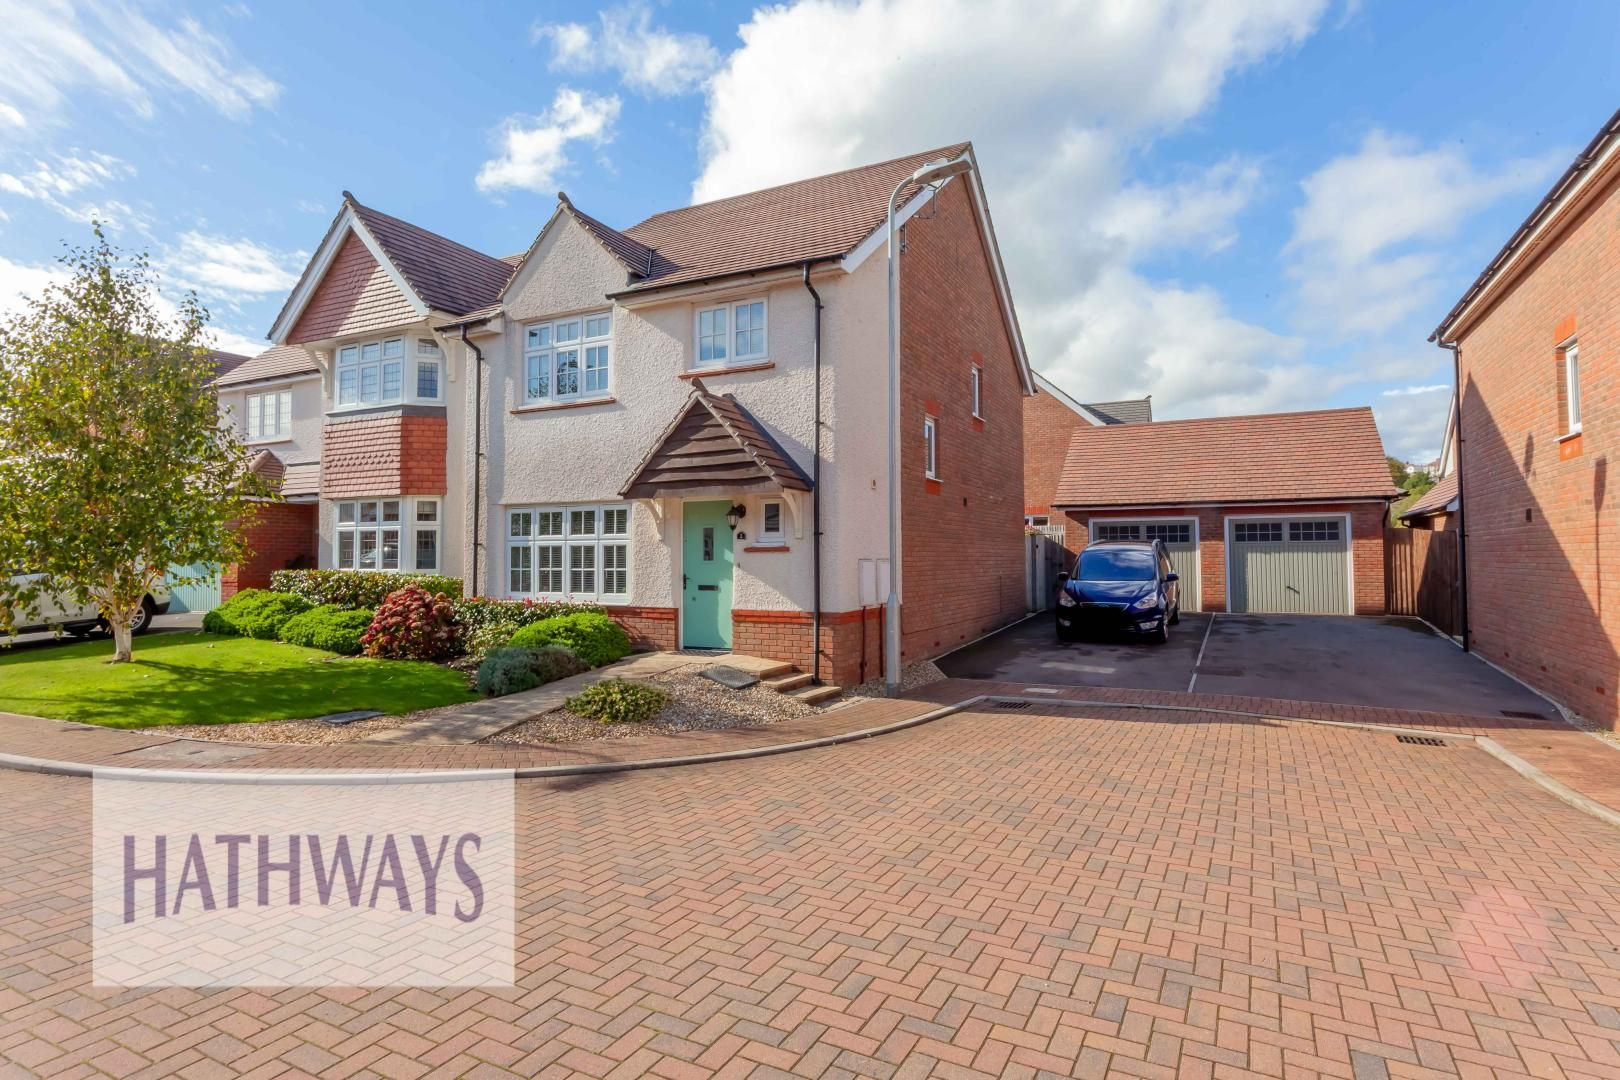 4 bed house for sale in Downton Hall Close, NP20